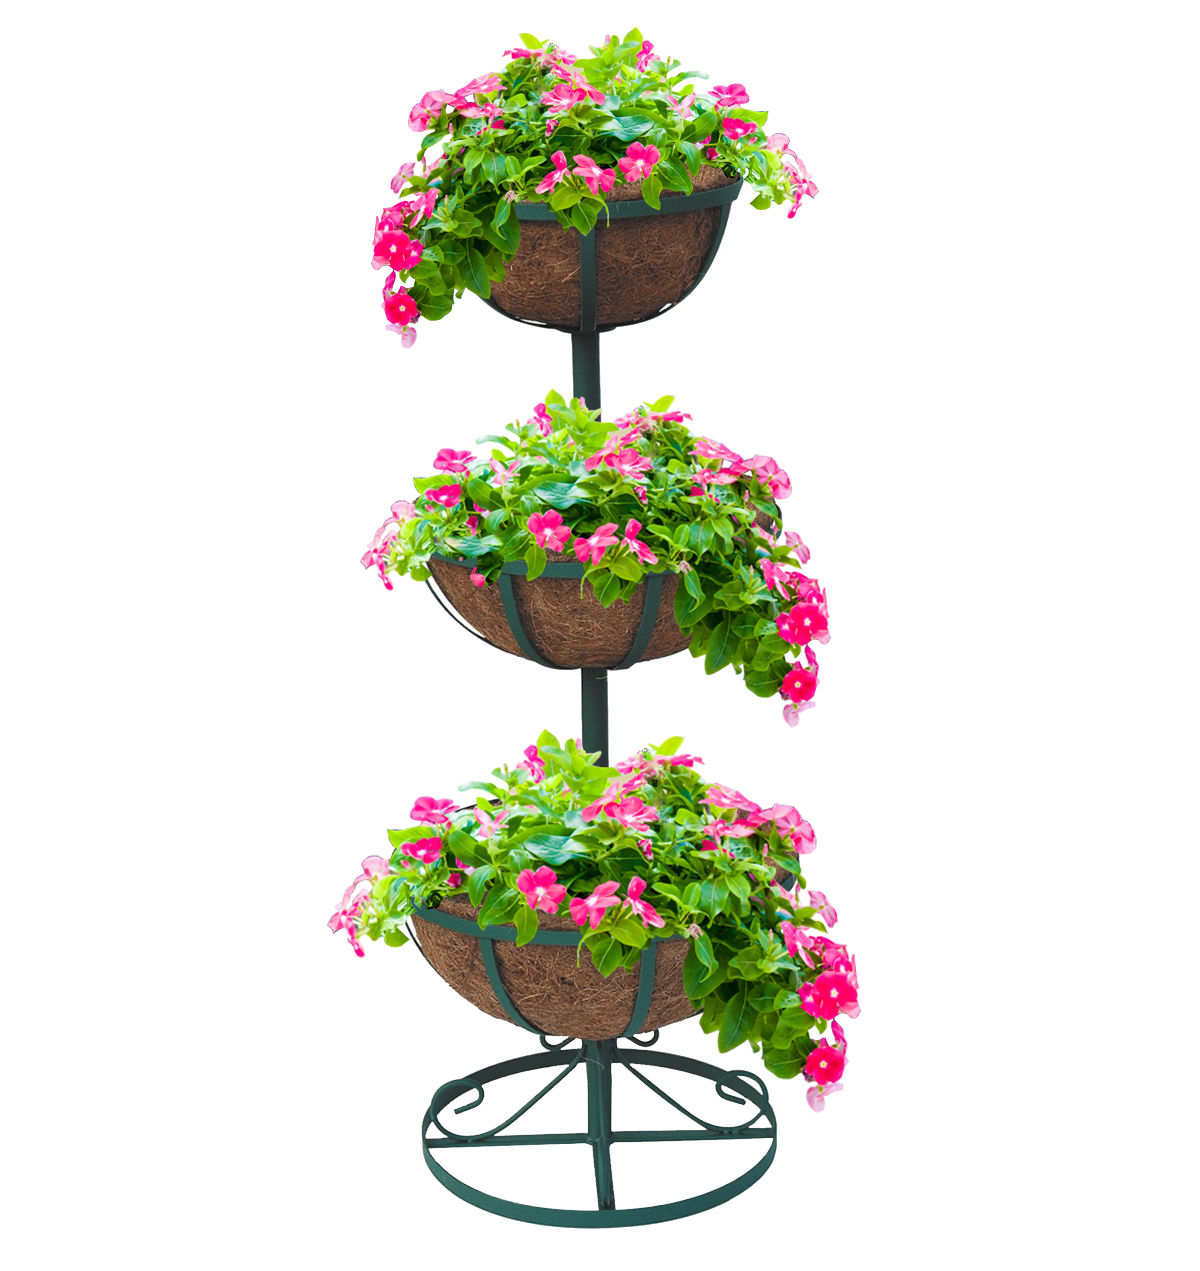 3 Tier Planter Stand with Coco Liners Garden Flower Fountain Weatherproof I